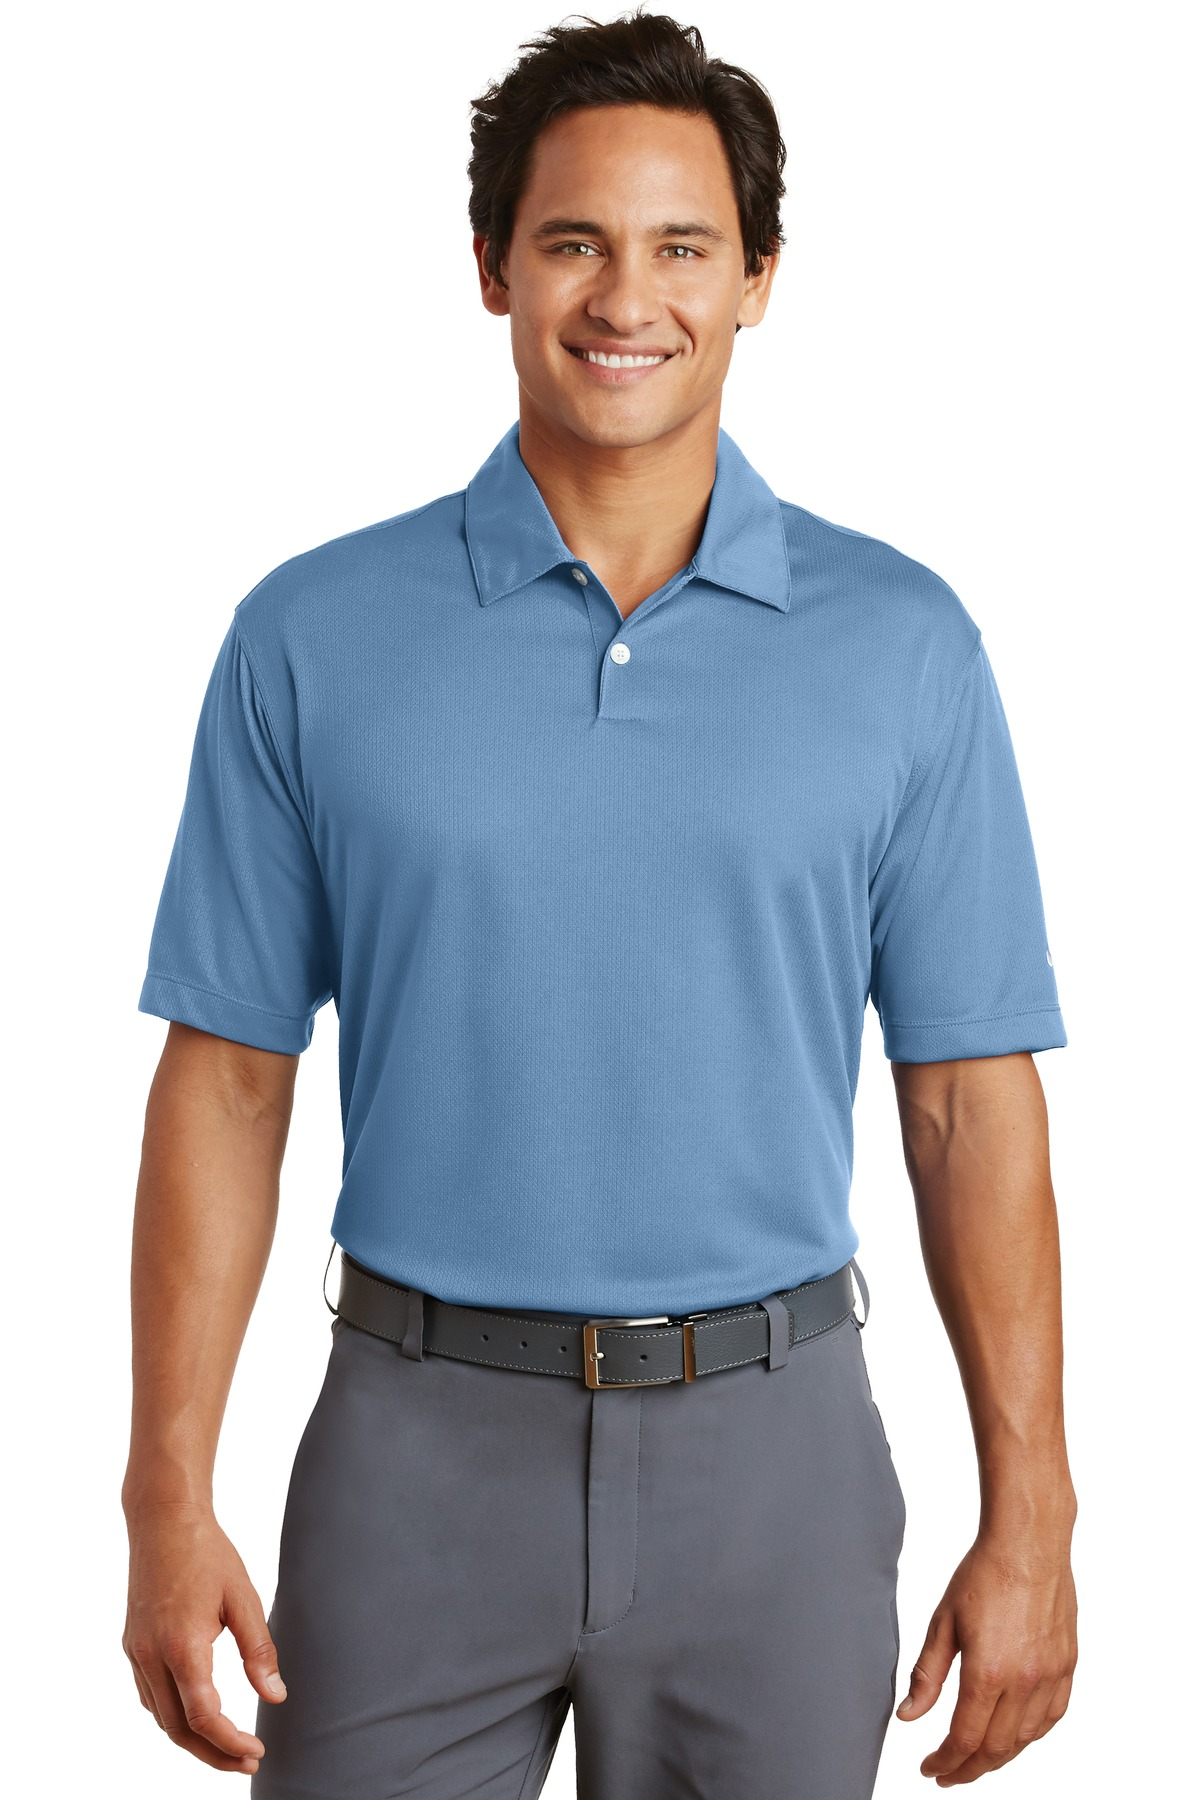 Nike Dri-FIT Pebble Texture Polo. 373749 - Fair Blue